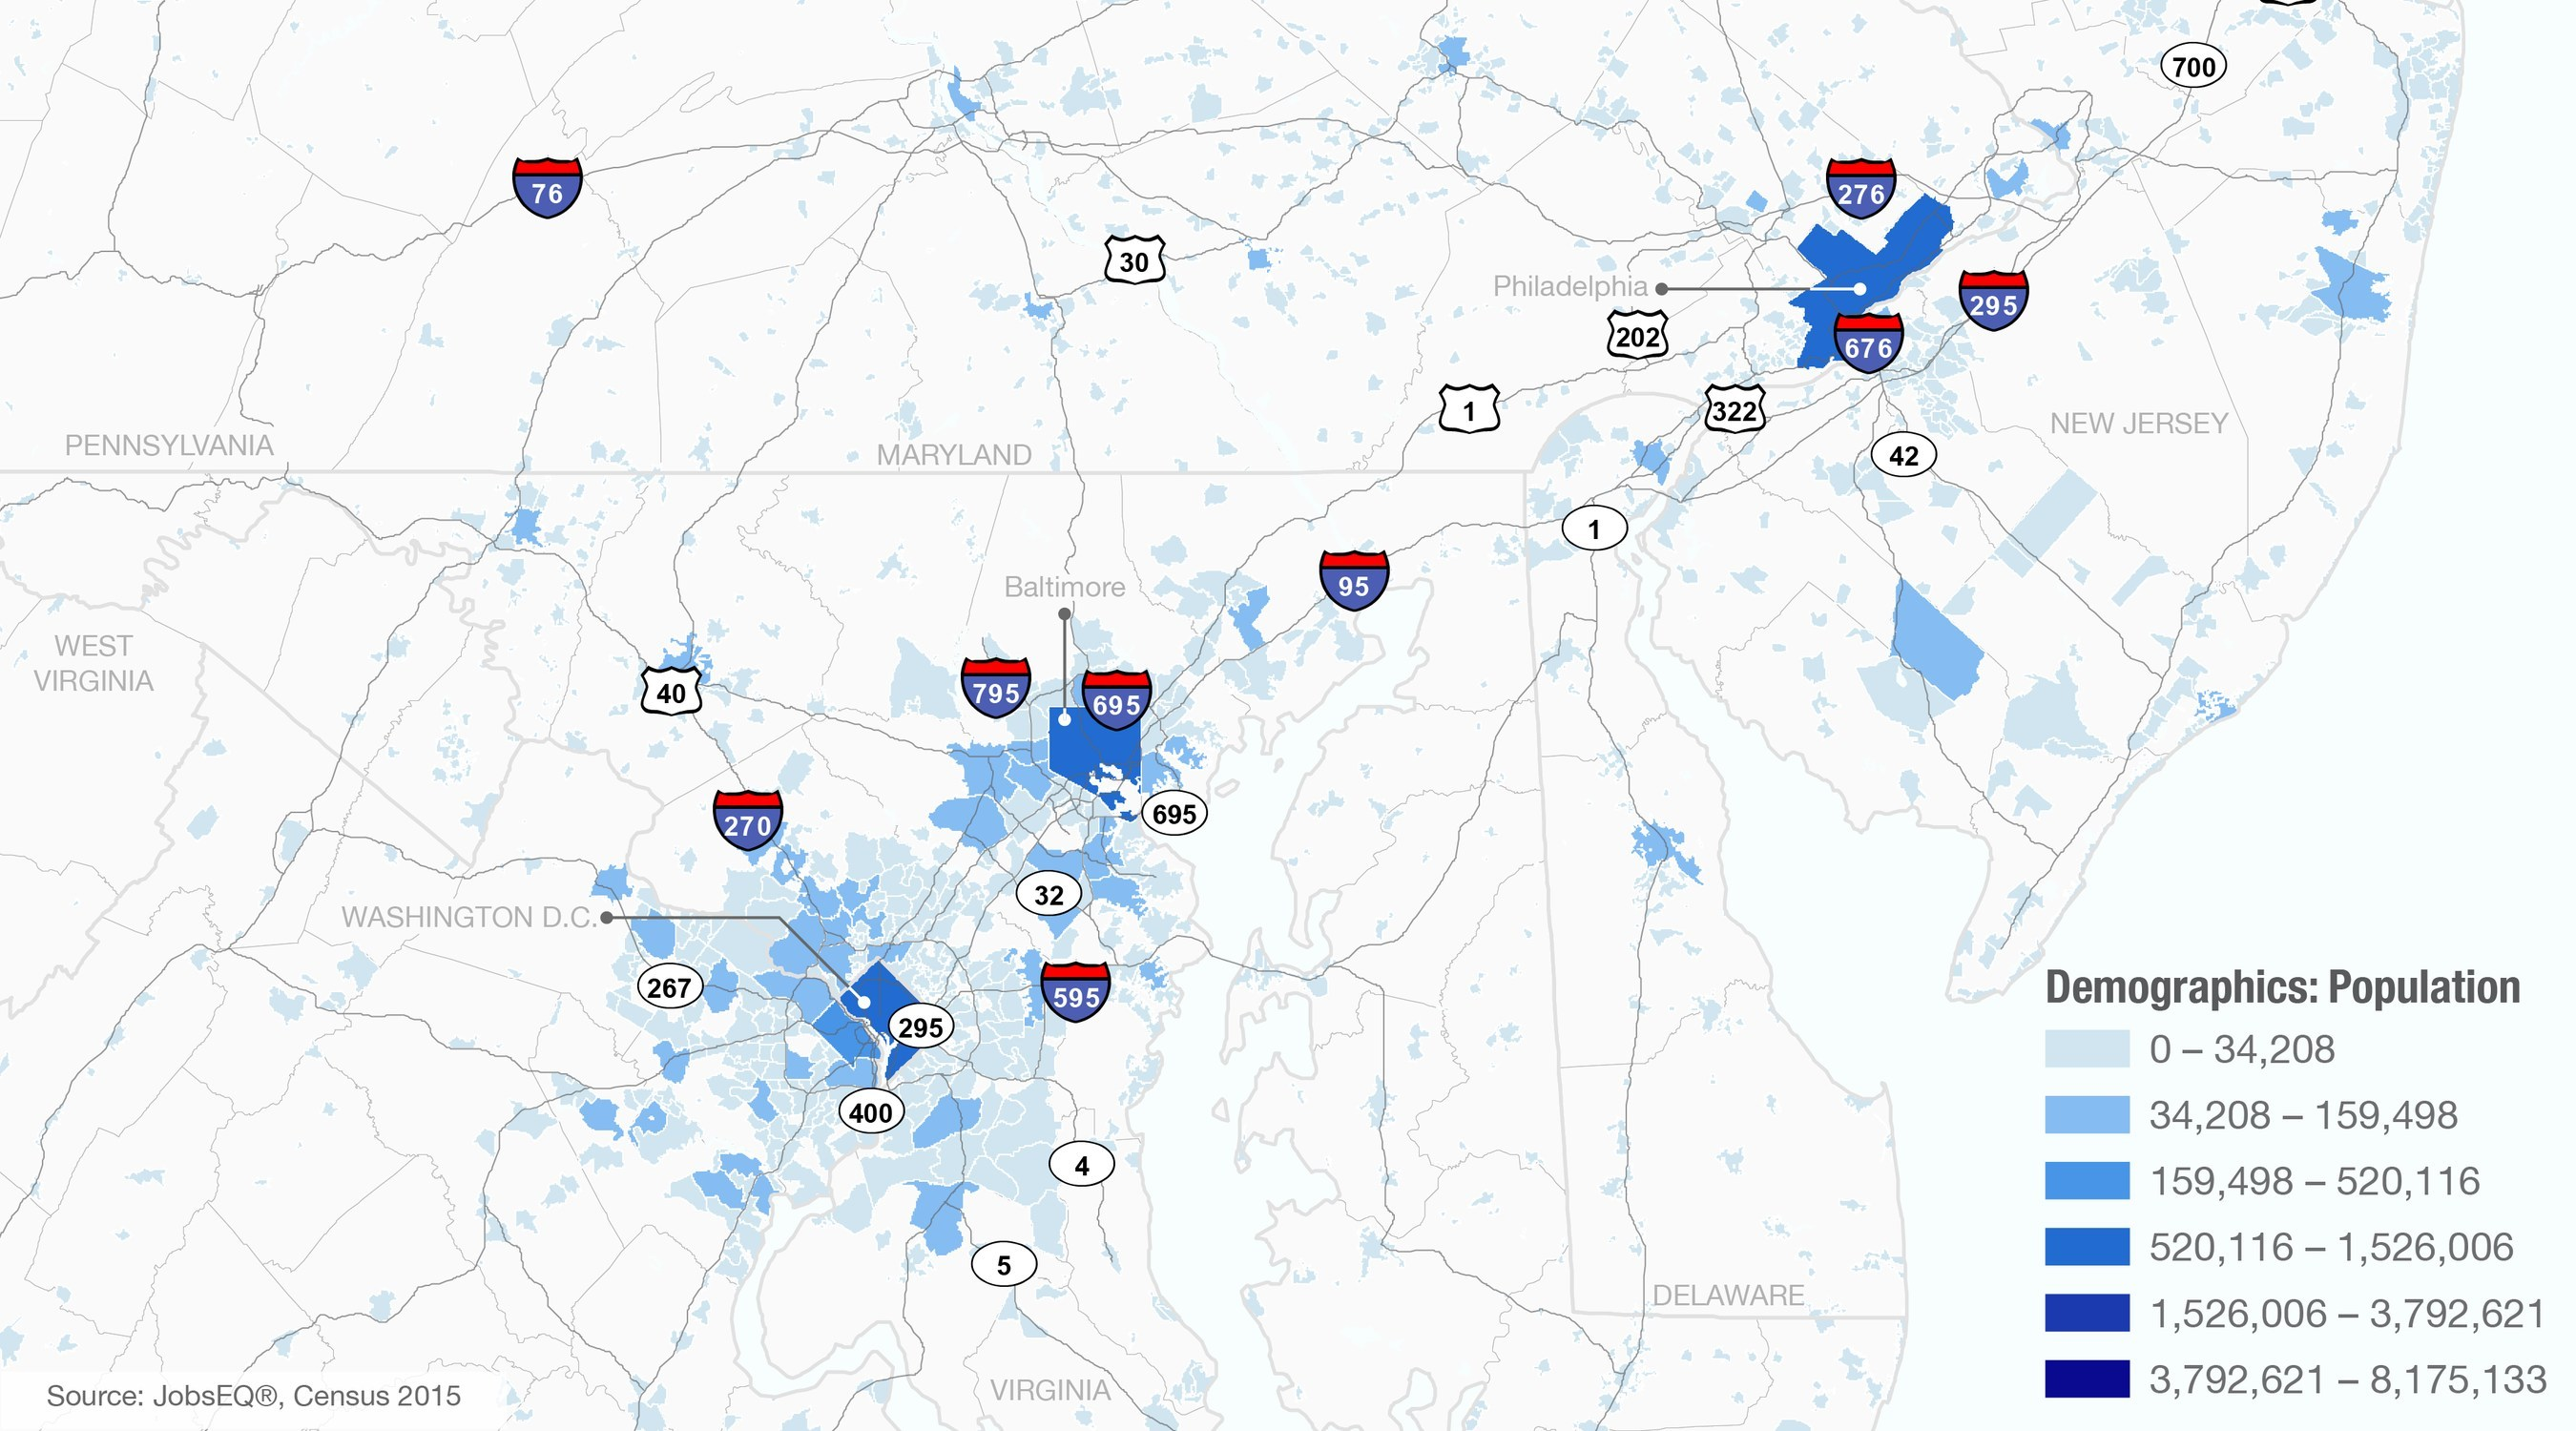 This map shows 2015 Census population figures for places (cities, towns, villages, etc.) in and around the Washington D.C.-Philadelphia corridor.